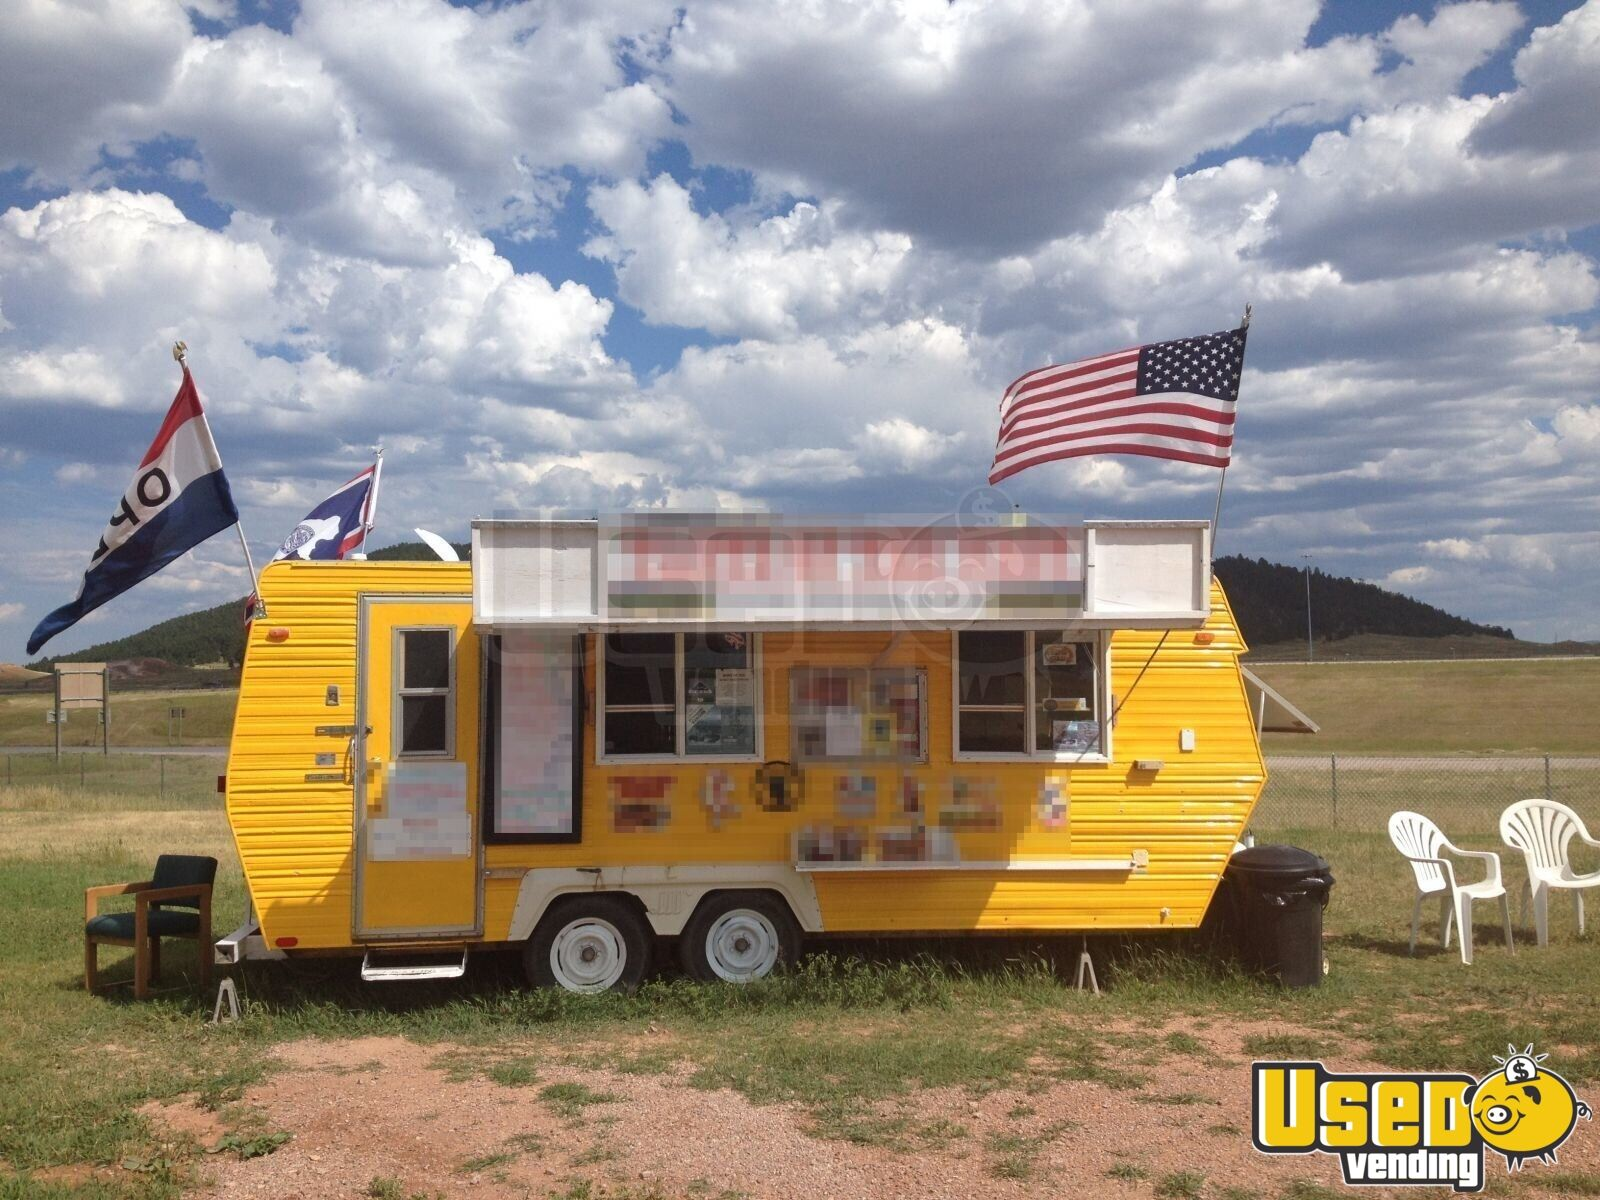 Food Concession Trailer Concession Trailer Spare Tire Wyoming for Sale - 2